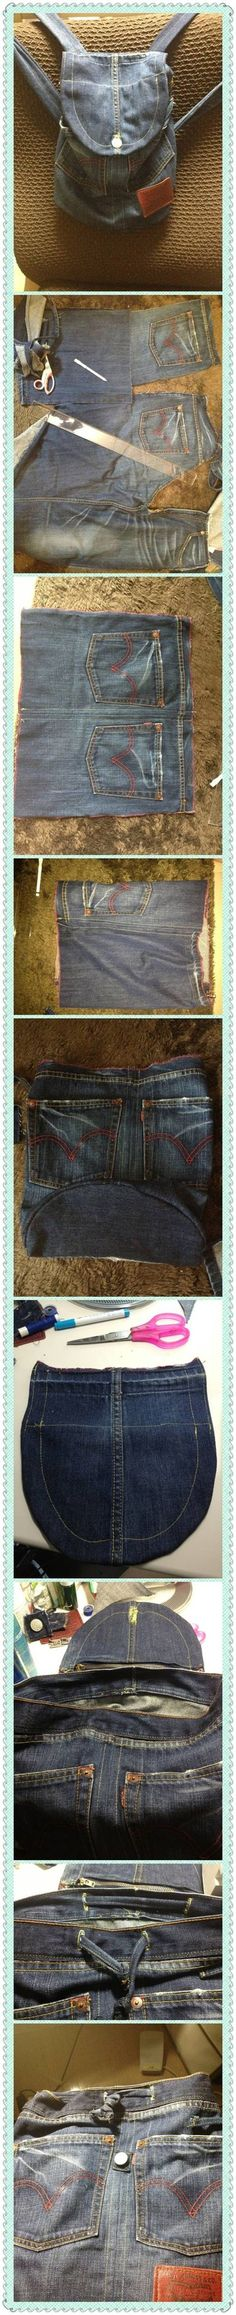 DIY Old Denim Backpack - no instructions, jest photos it seems - but helpful nonetheless